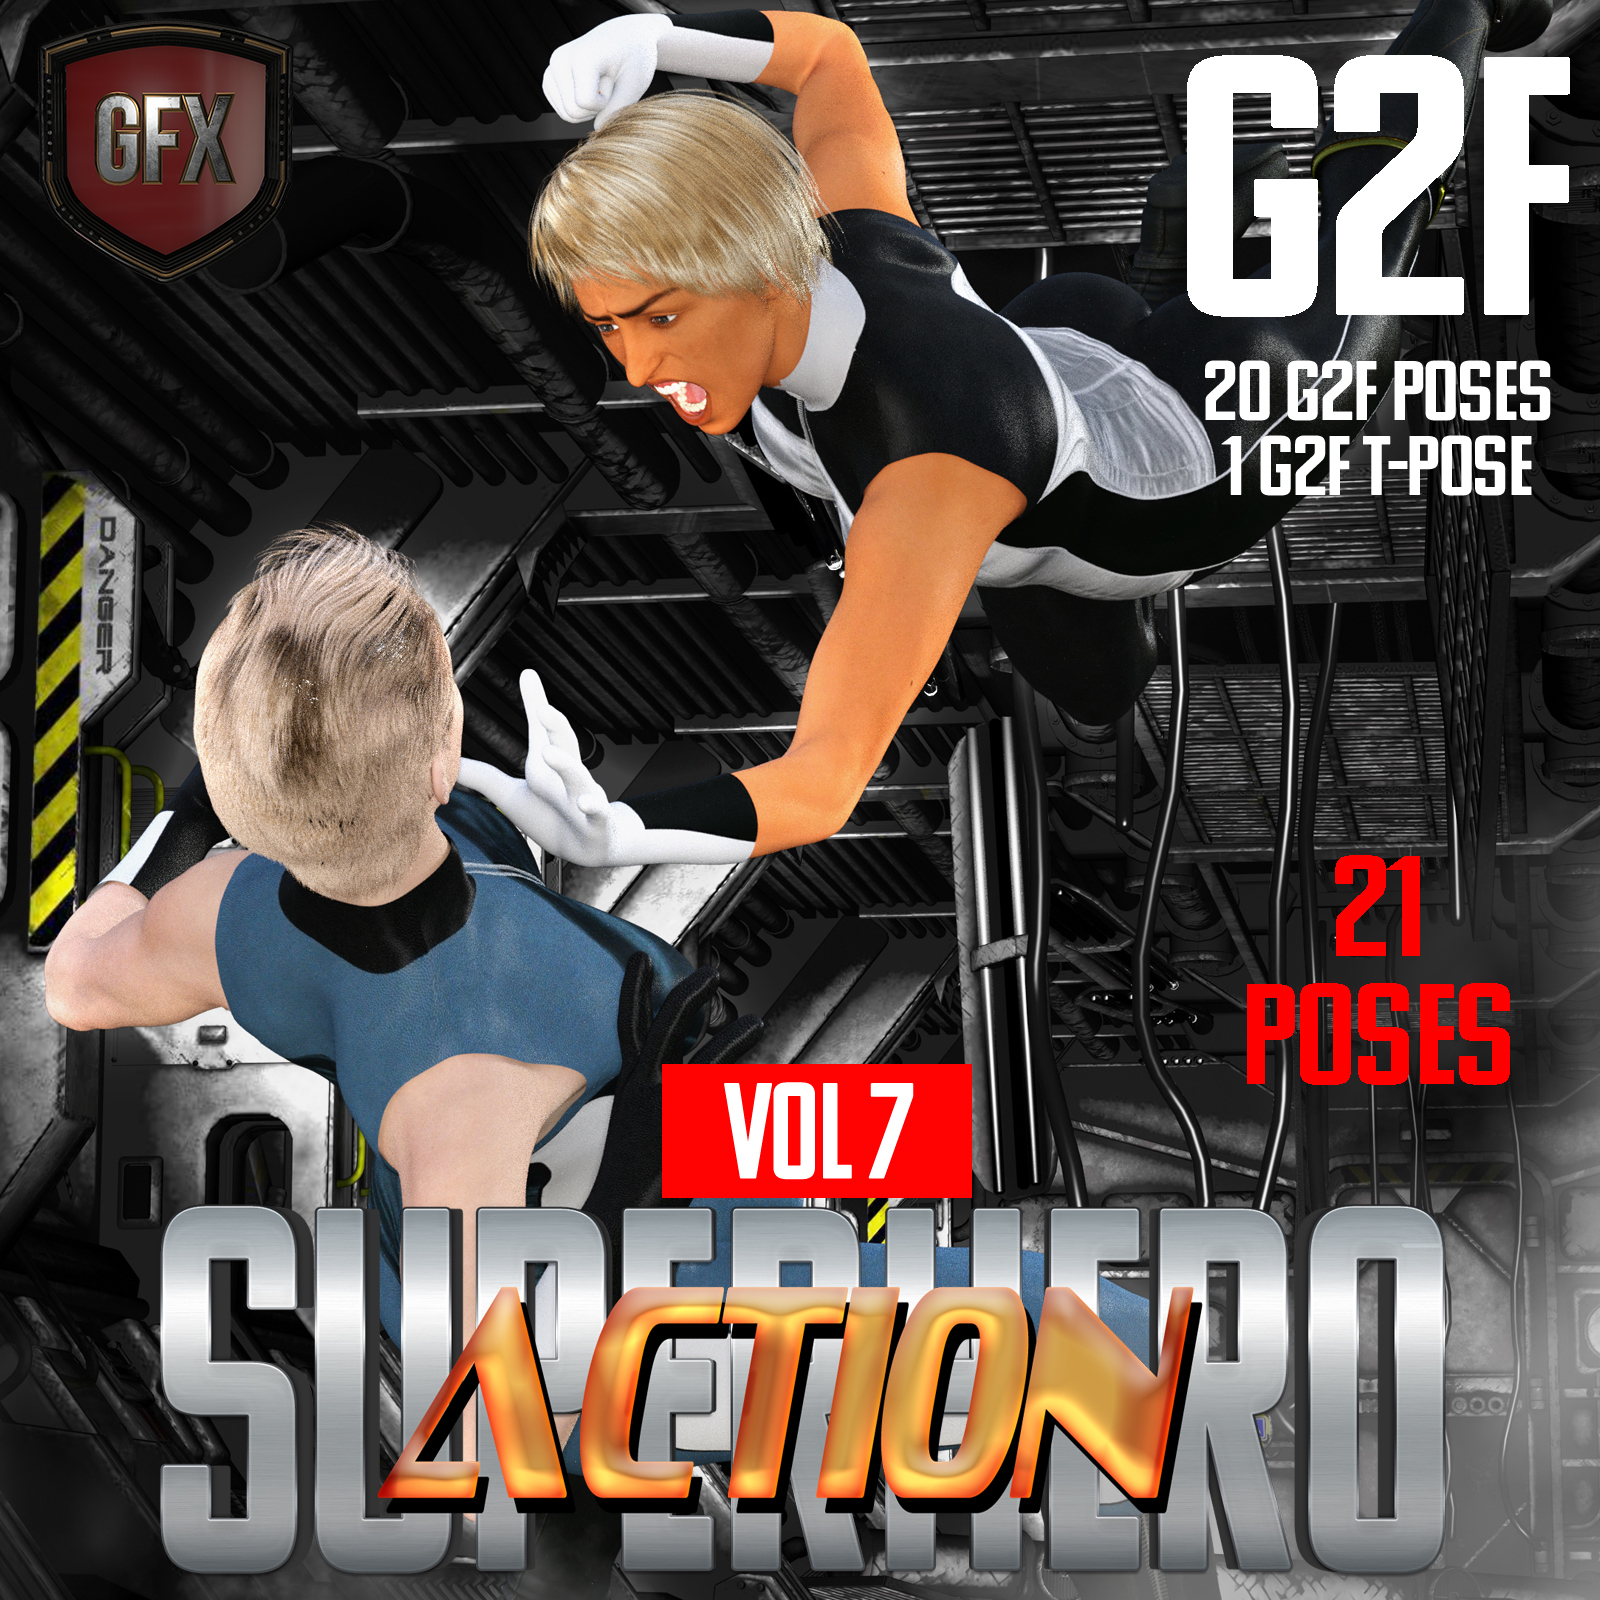 SuperHero Action for G2F Volume 7